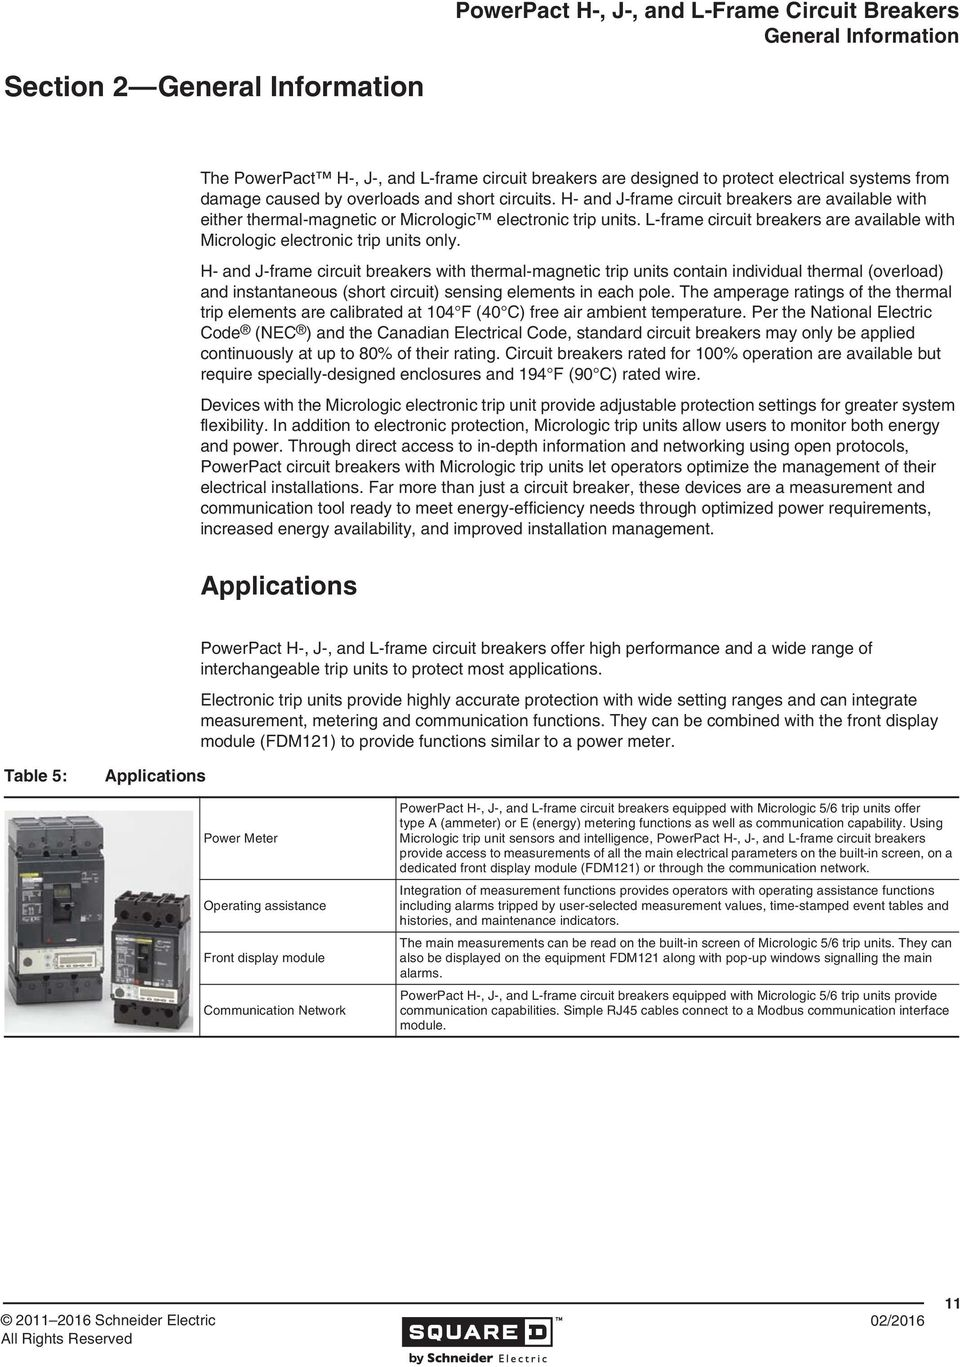 Powerpact H J And L Frame Circuit Breakers Pdf Breaker Integral Temperature Monitoring For Advance Detection With Thermal Magnetic Trip Units Contain Individual